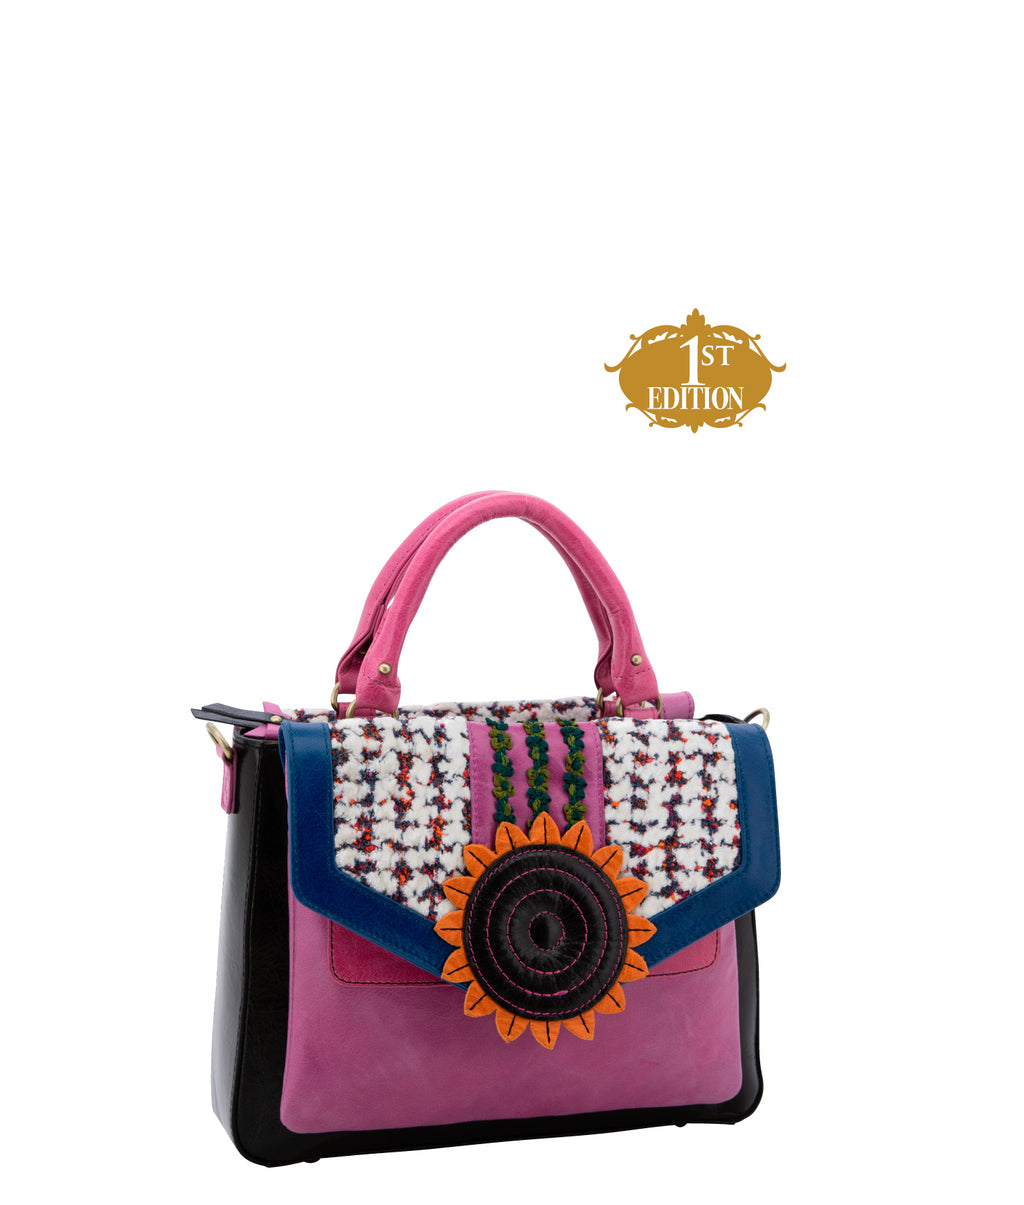 NANCY Tote Bag - Fiesta - 1st Edition